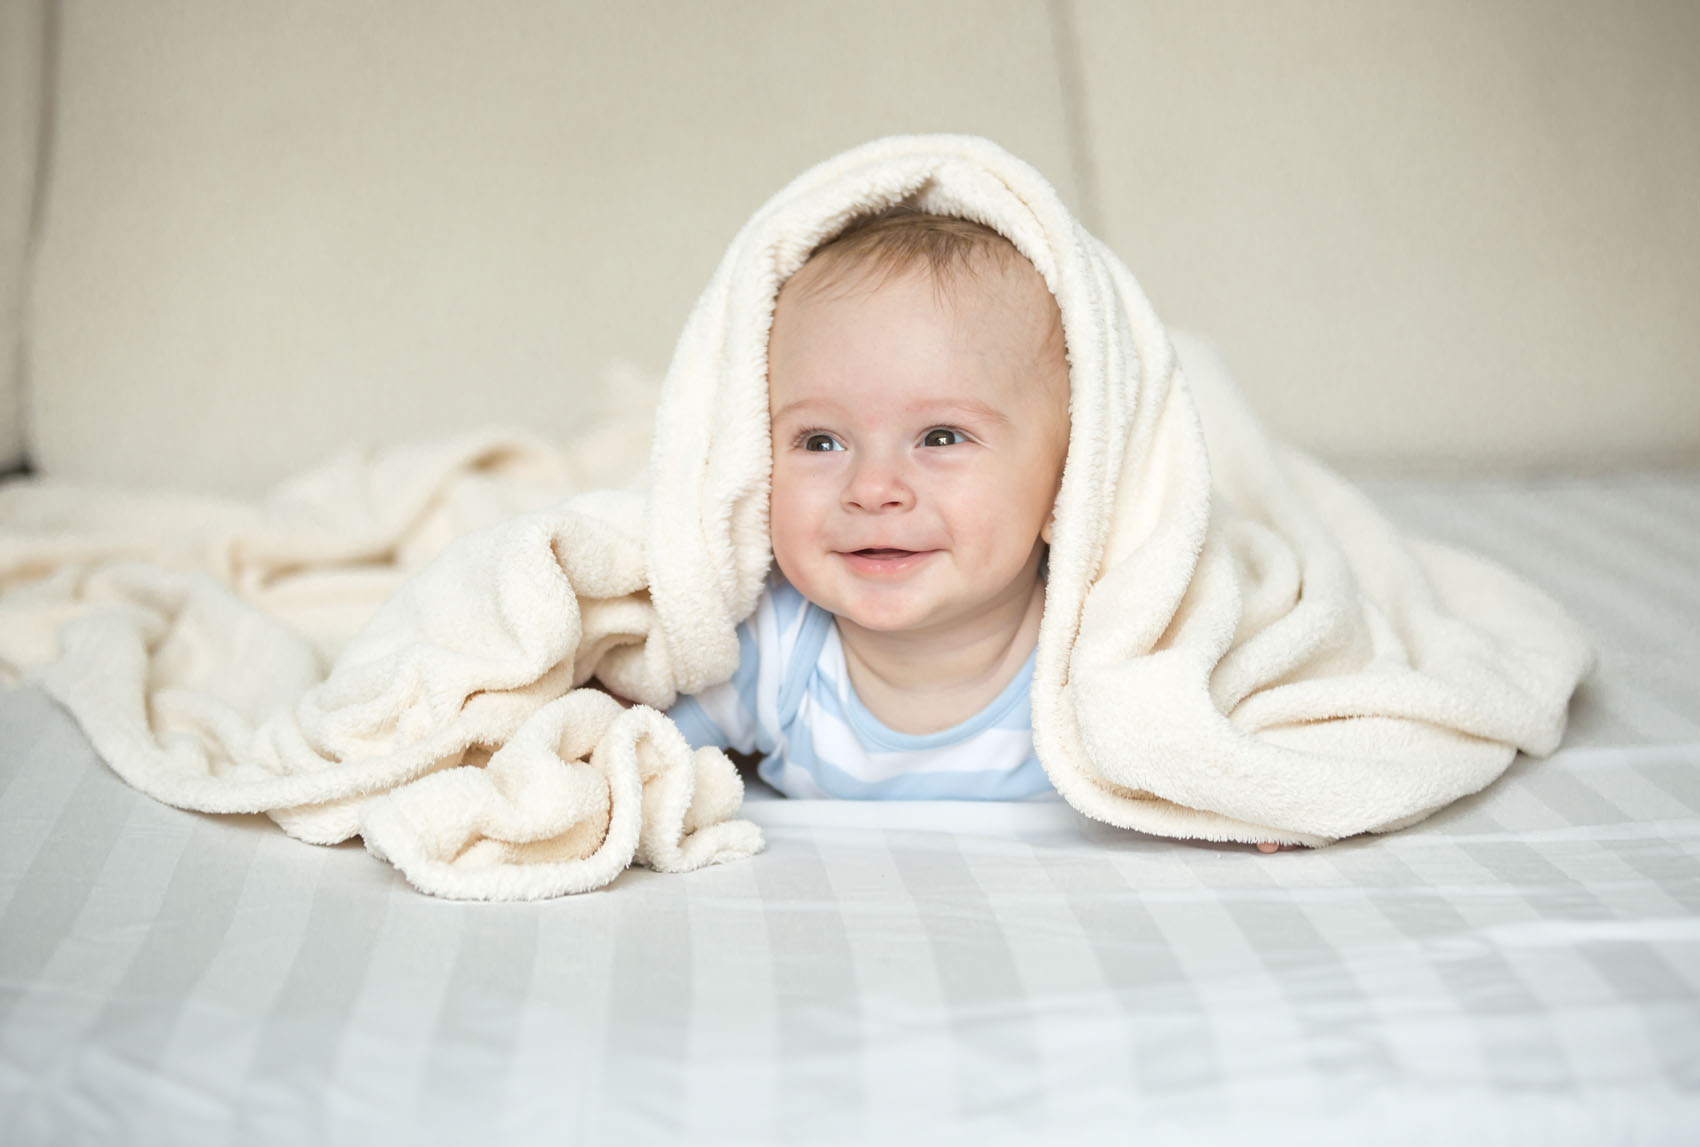 Baby playing under a blanket